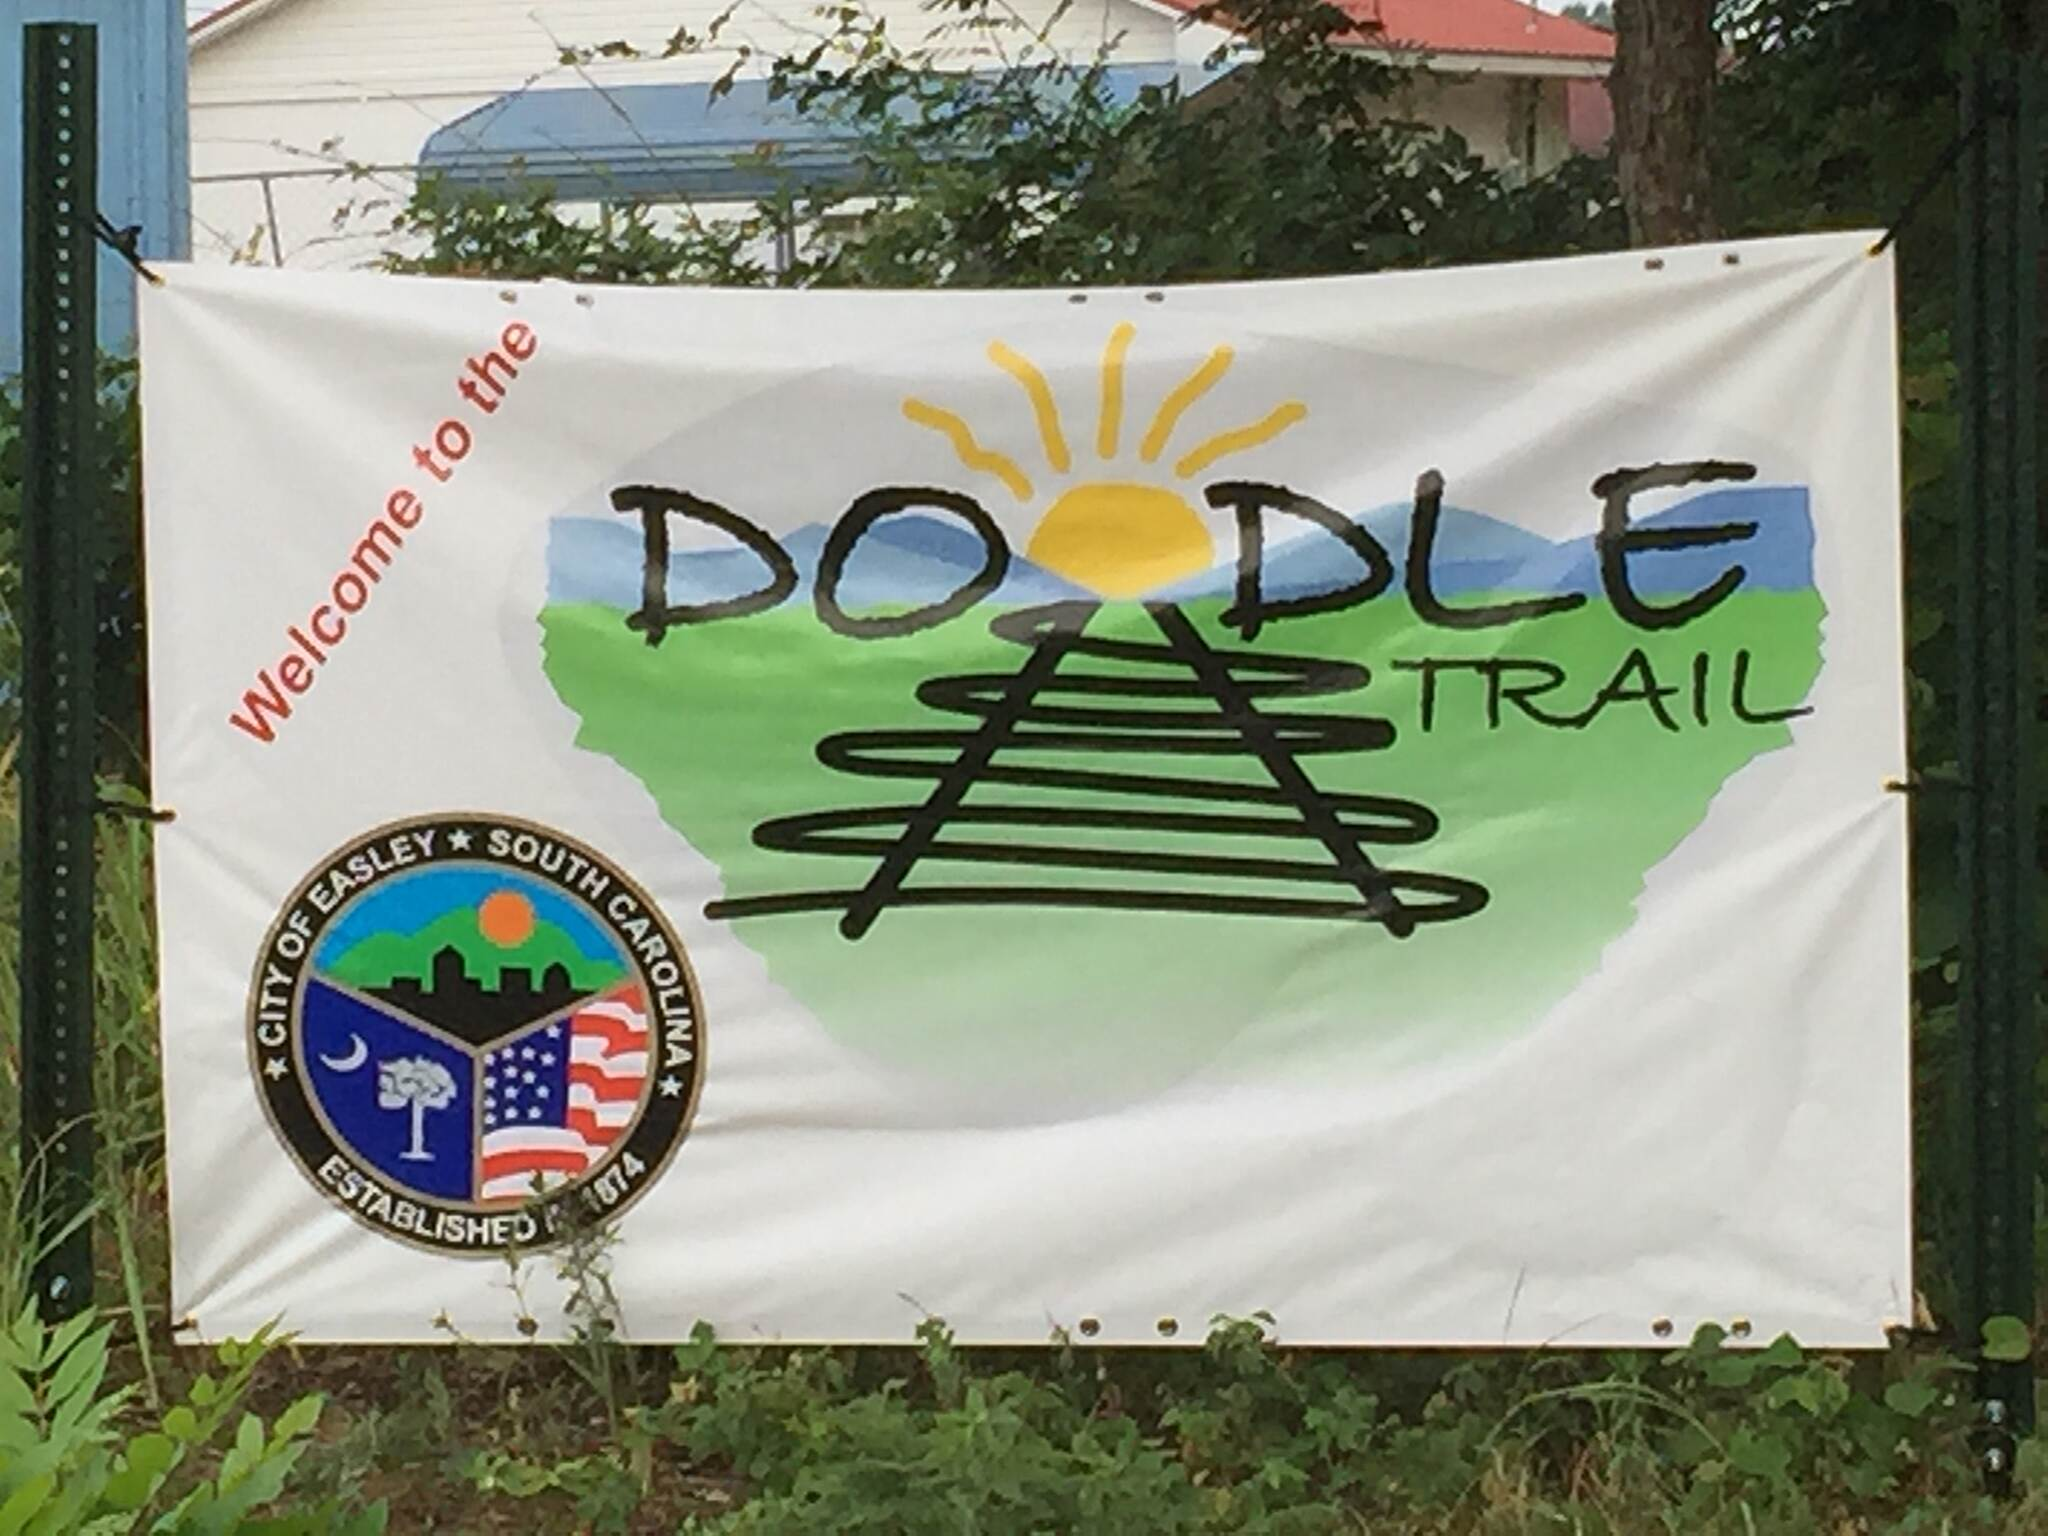 Doodle Rail Trail Easley end of the Doodle Trail Banner at entrance of trail